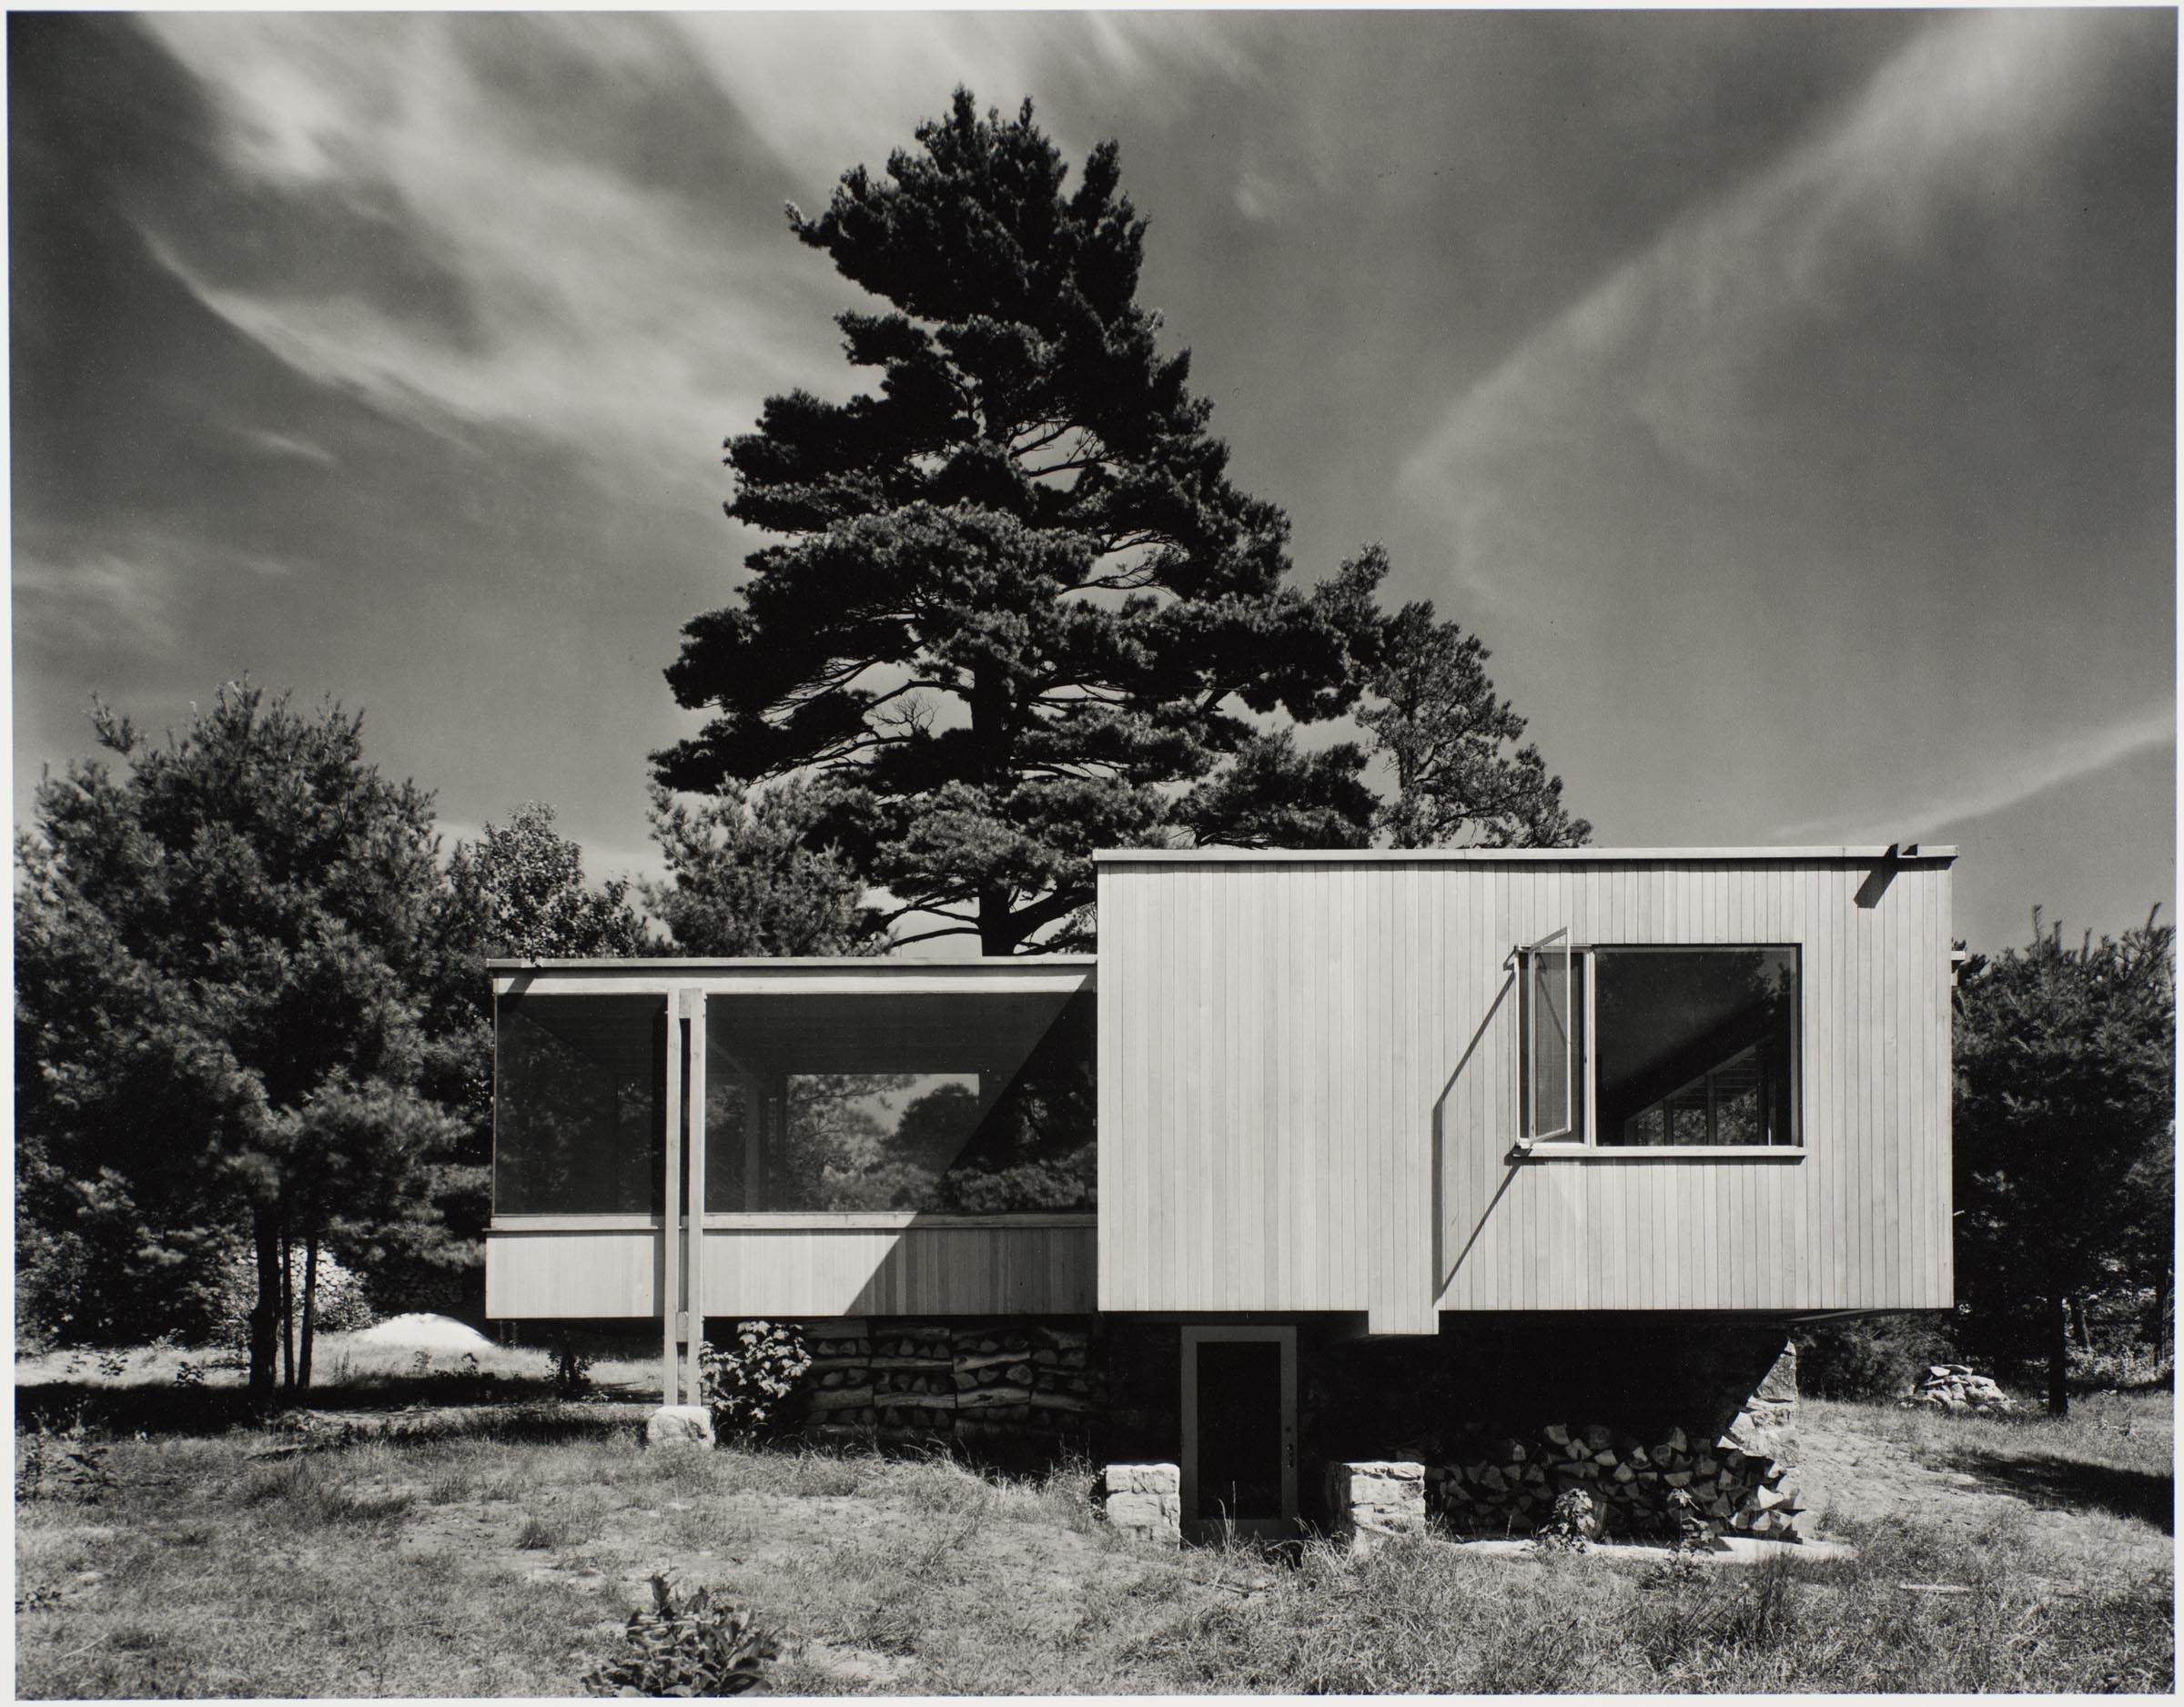 Chaimberlain Cottage by Marcel Bruer, photographed by Ezra Stoller